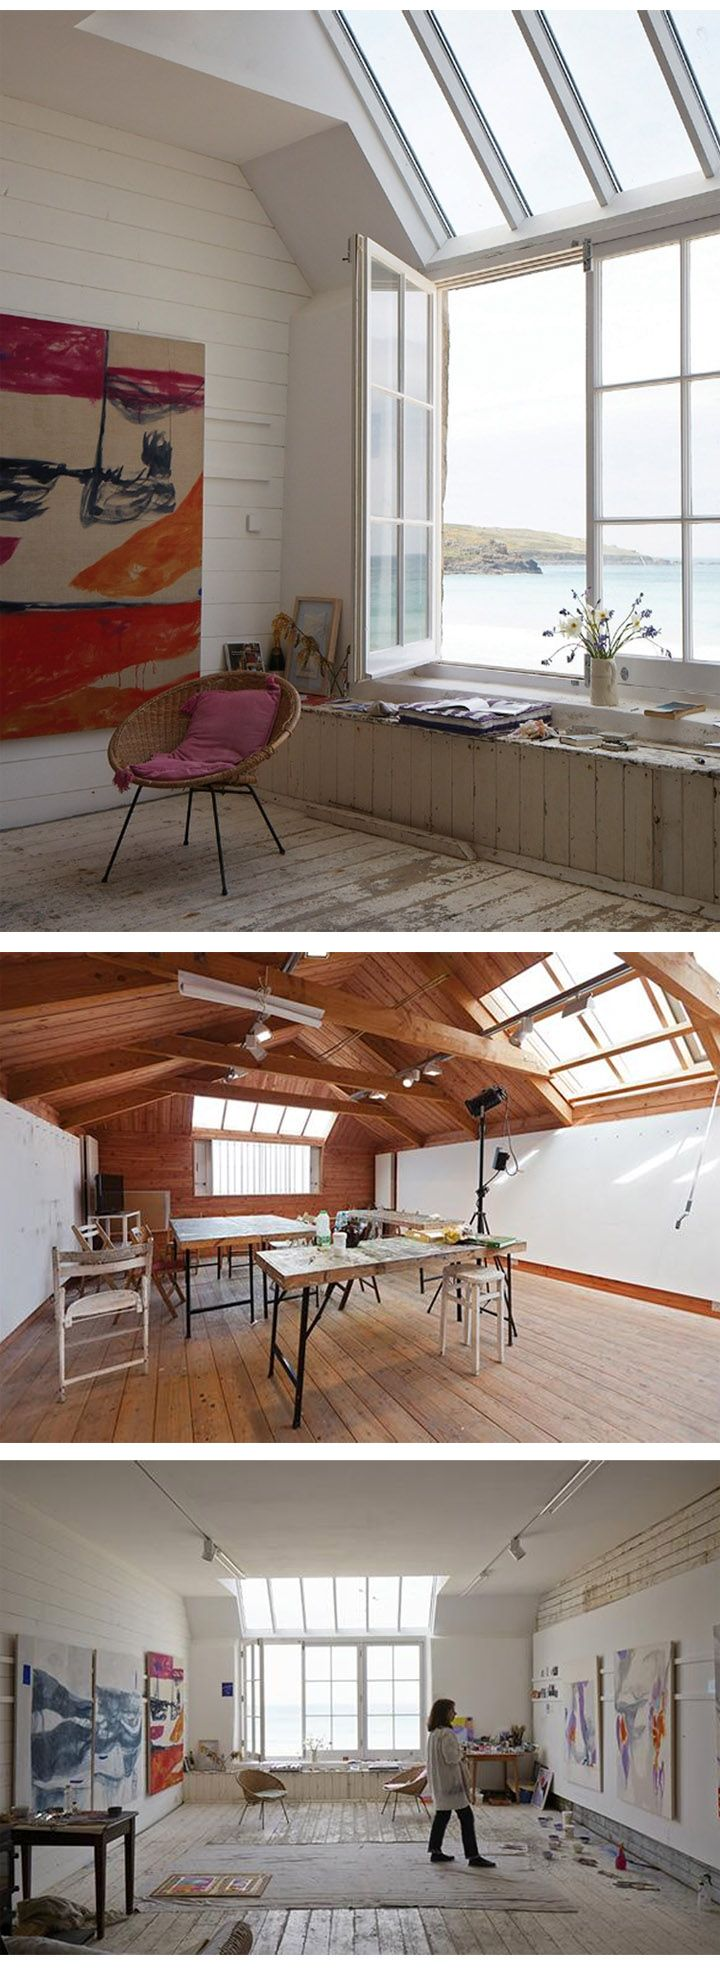 Porthmeor Studios  St Ives http www bdonline co ukBest 20  Art studios ideas on Pinterest   Painting studio  Studios  . Artist Studio Furniture Uk. Home Design Ideas